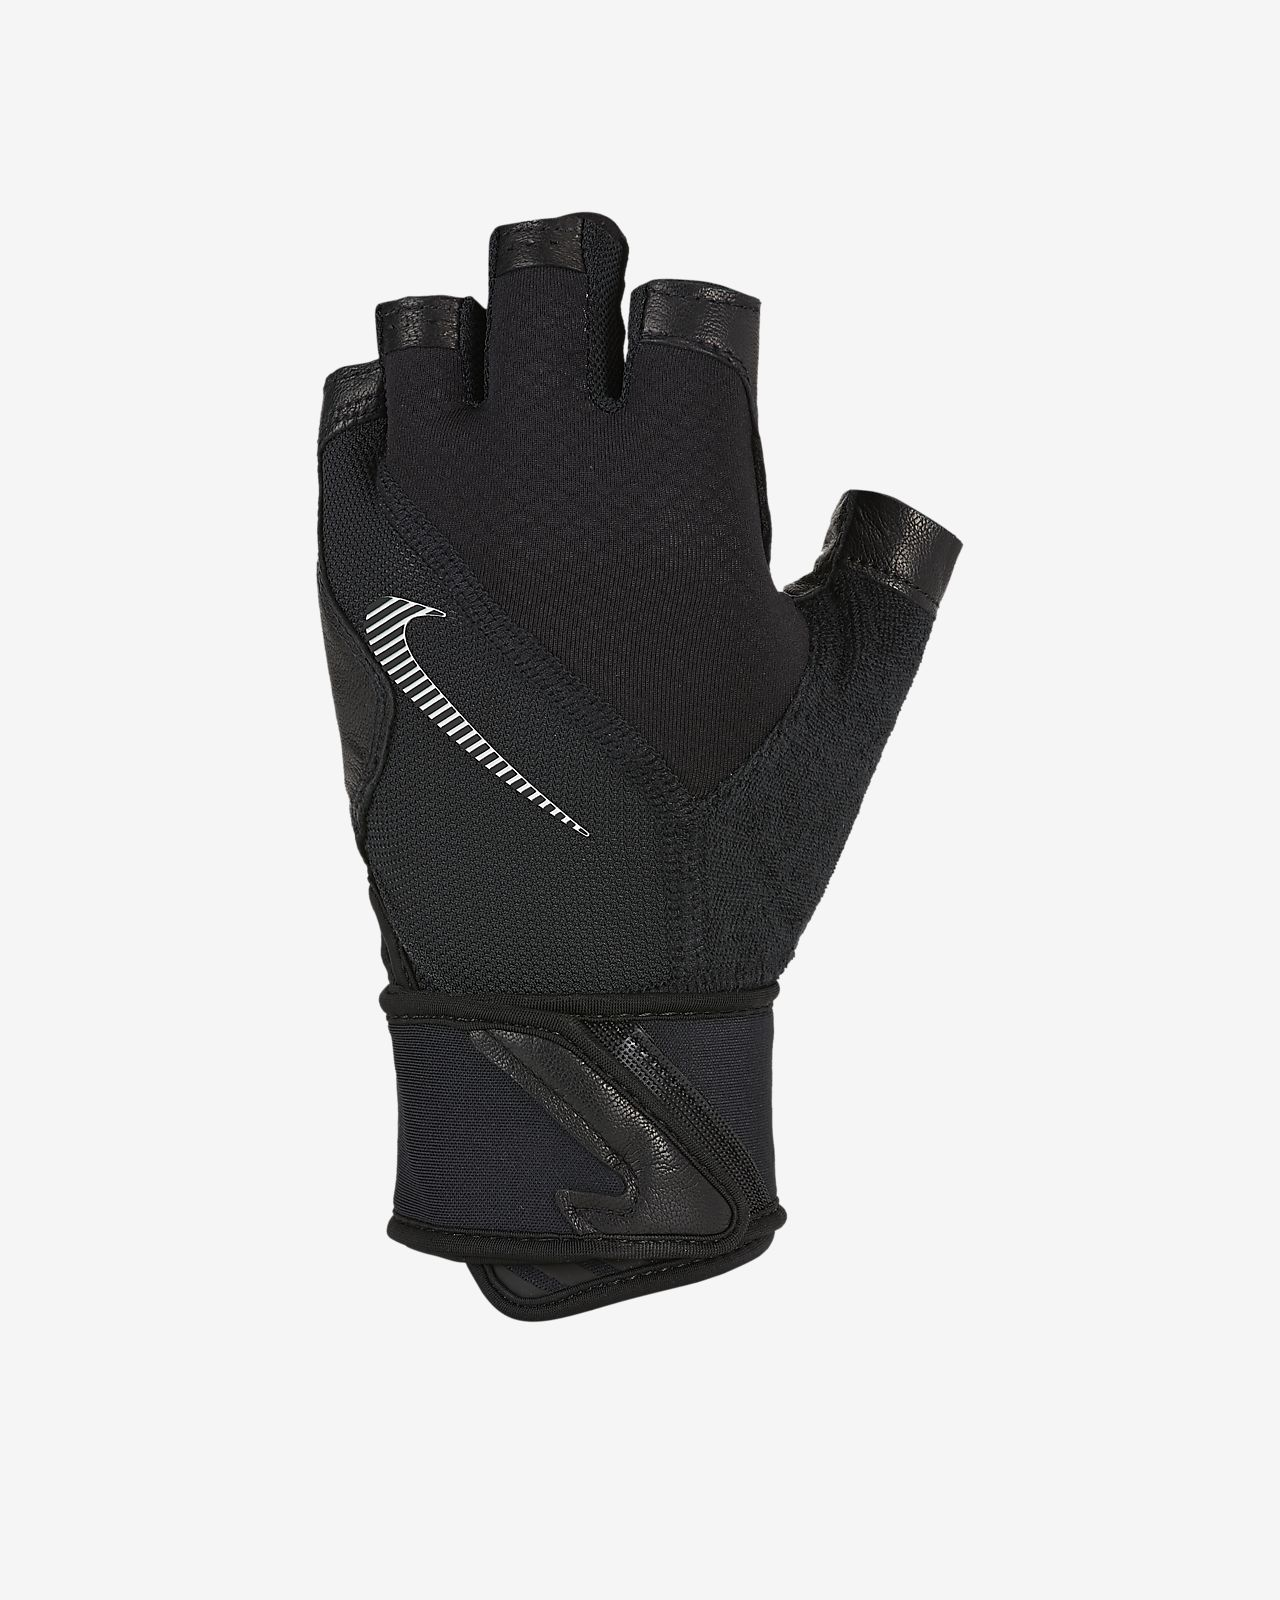 Gants de training Nike Elevated pour Homme